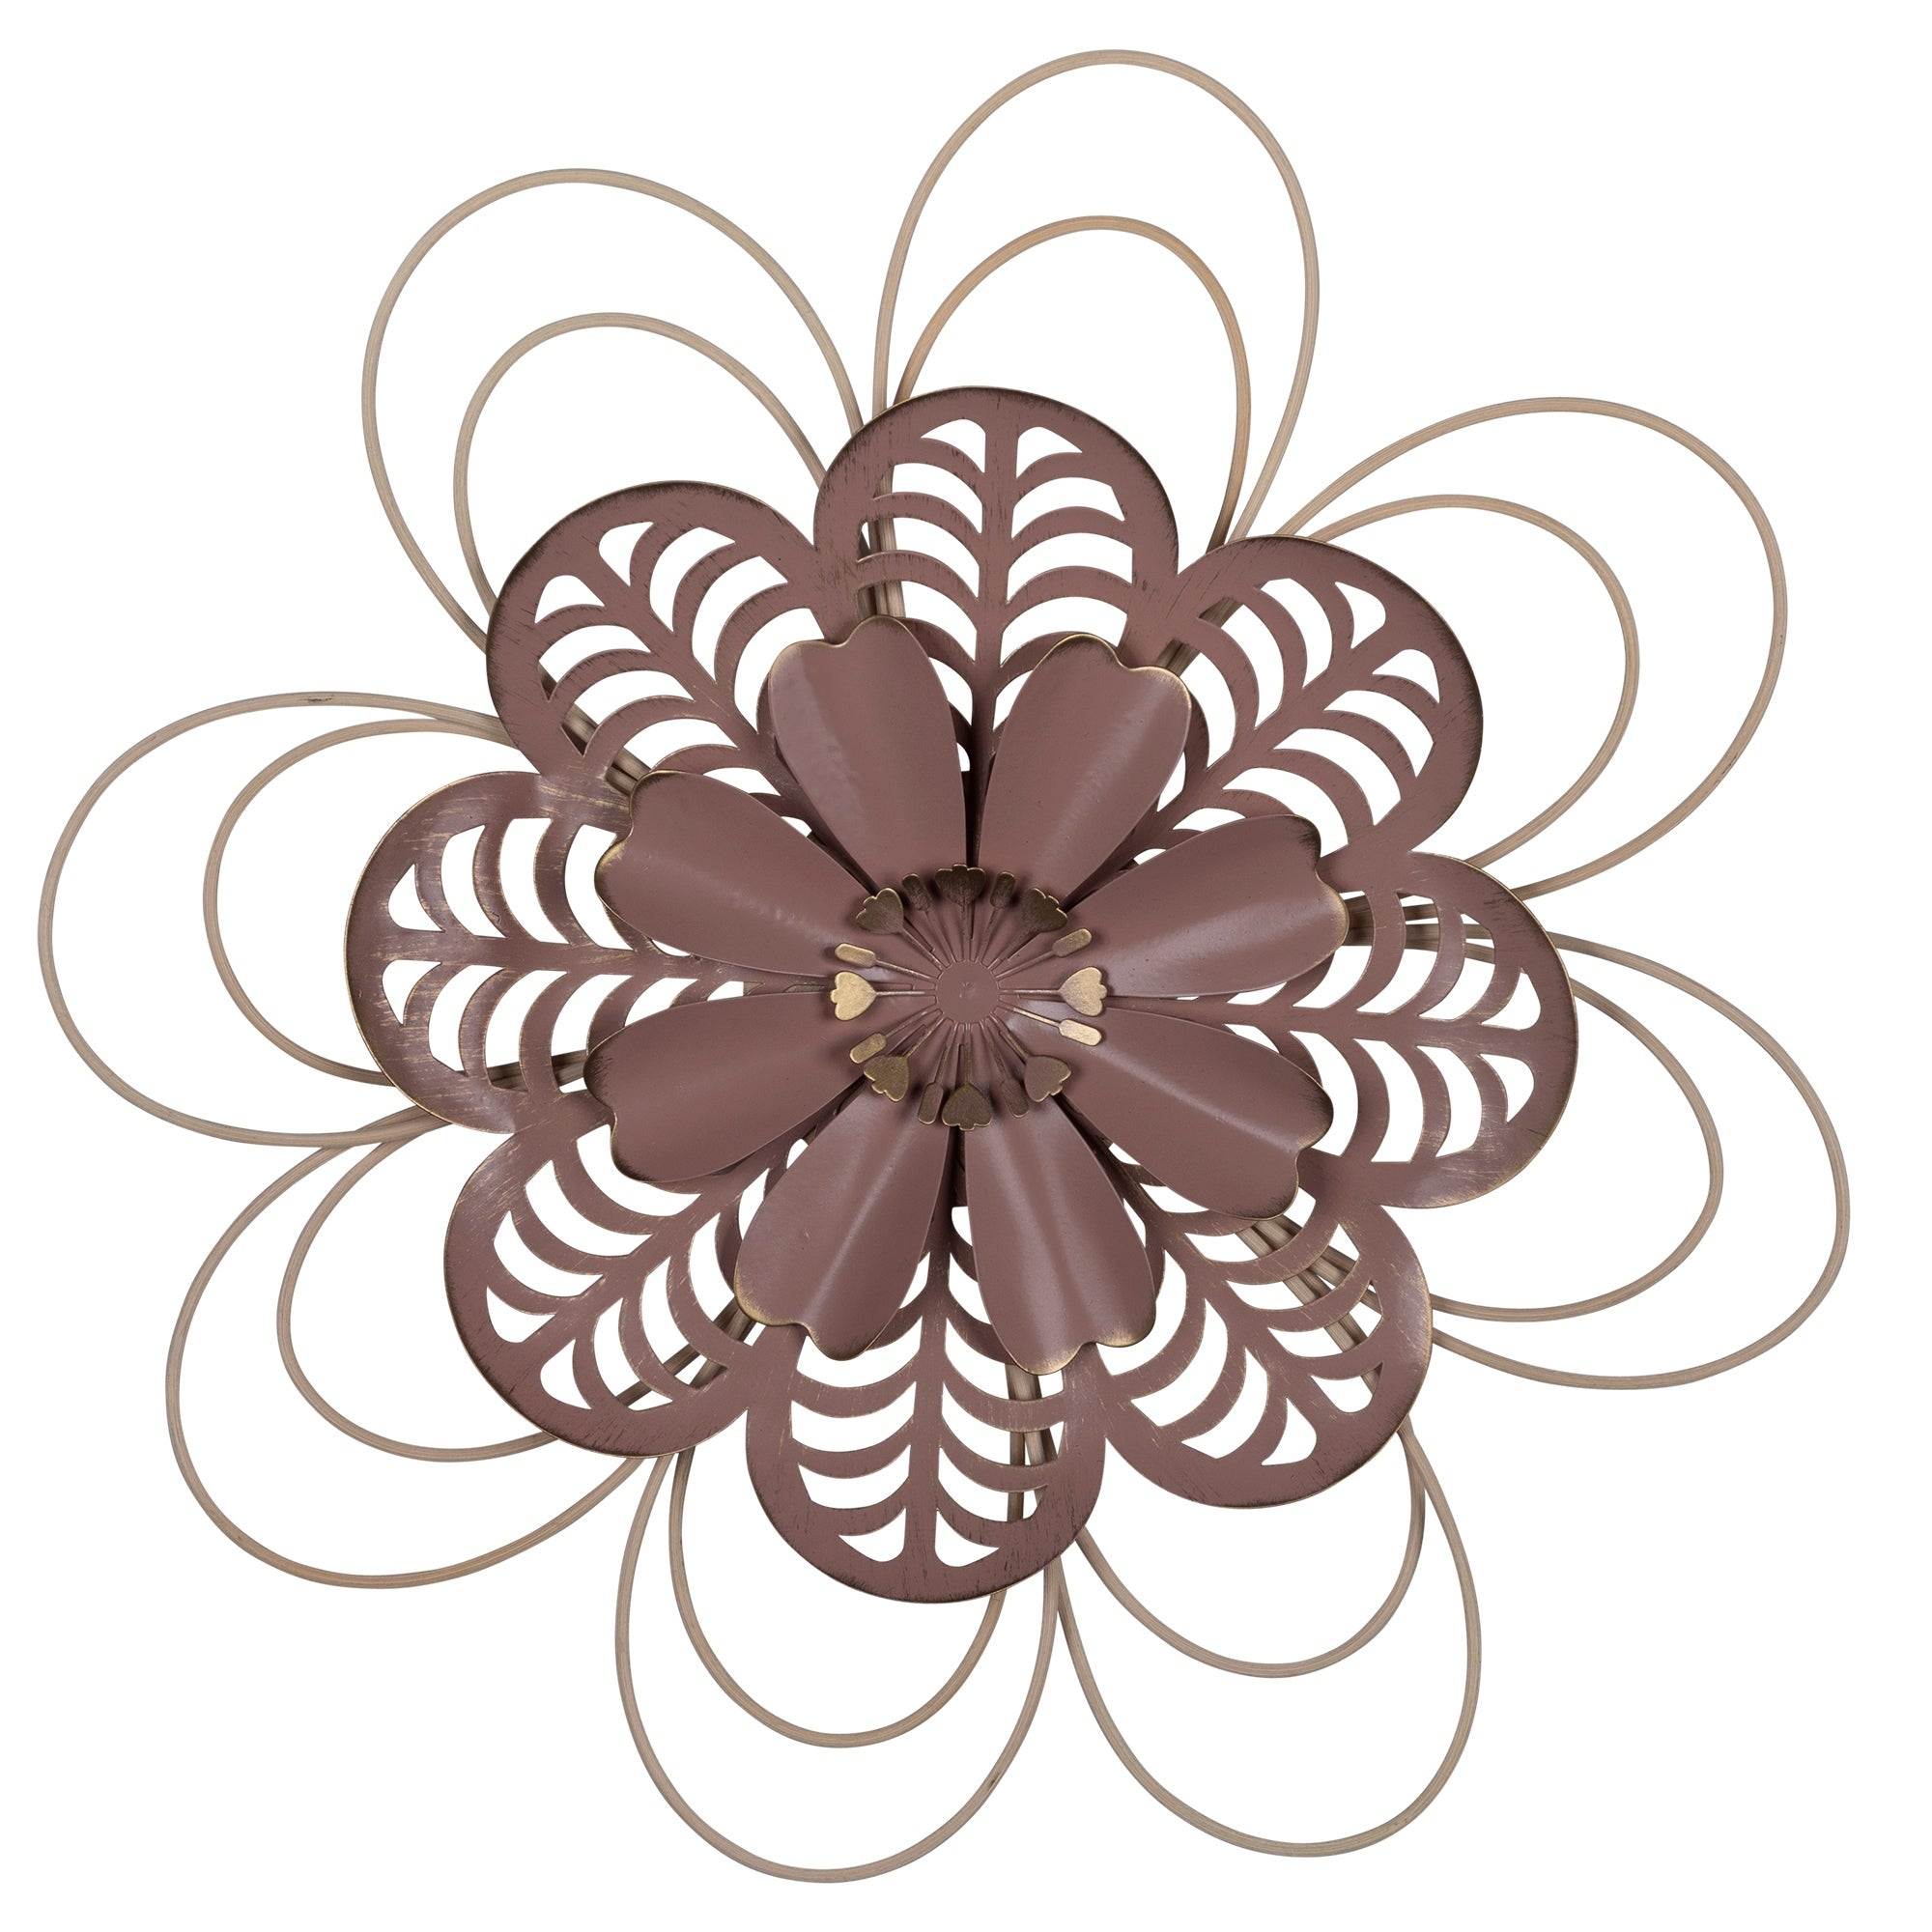 Stratton Home Decor Delicate Pink Metal And Wood Flower Wall Decor On Sale Overstock 32548502